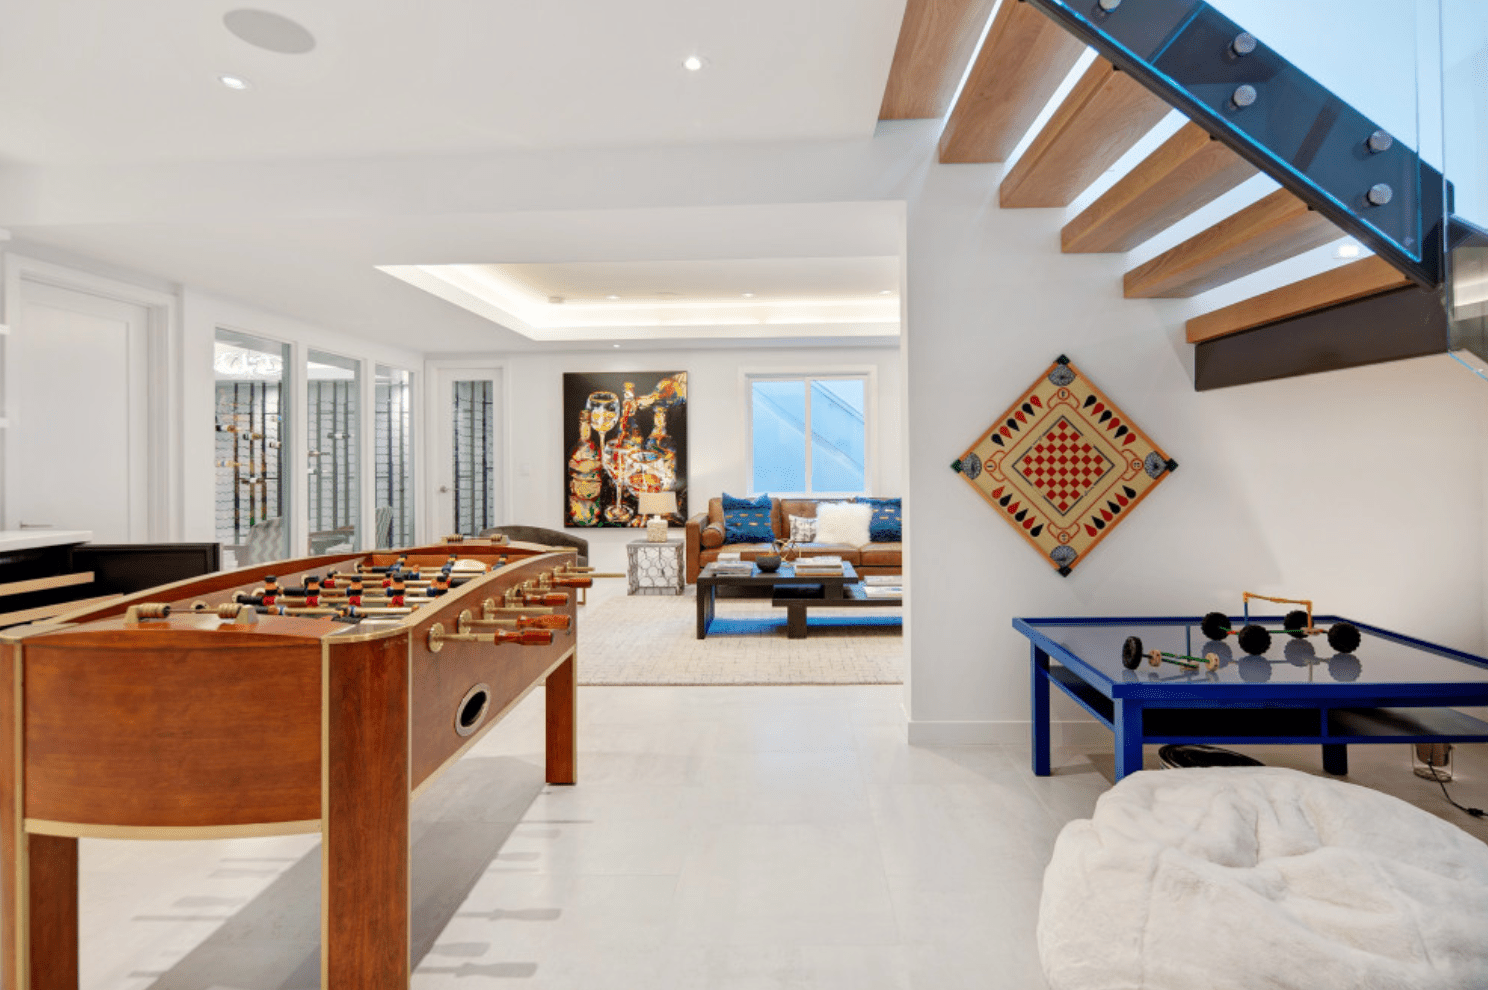 A well-lit basement with a recessed ceiling lined with cove lighting